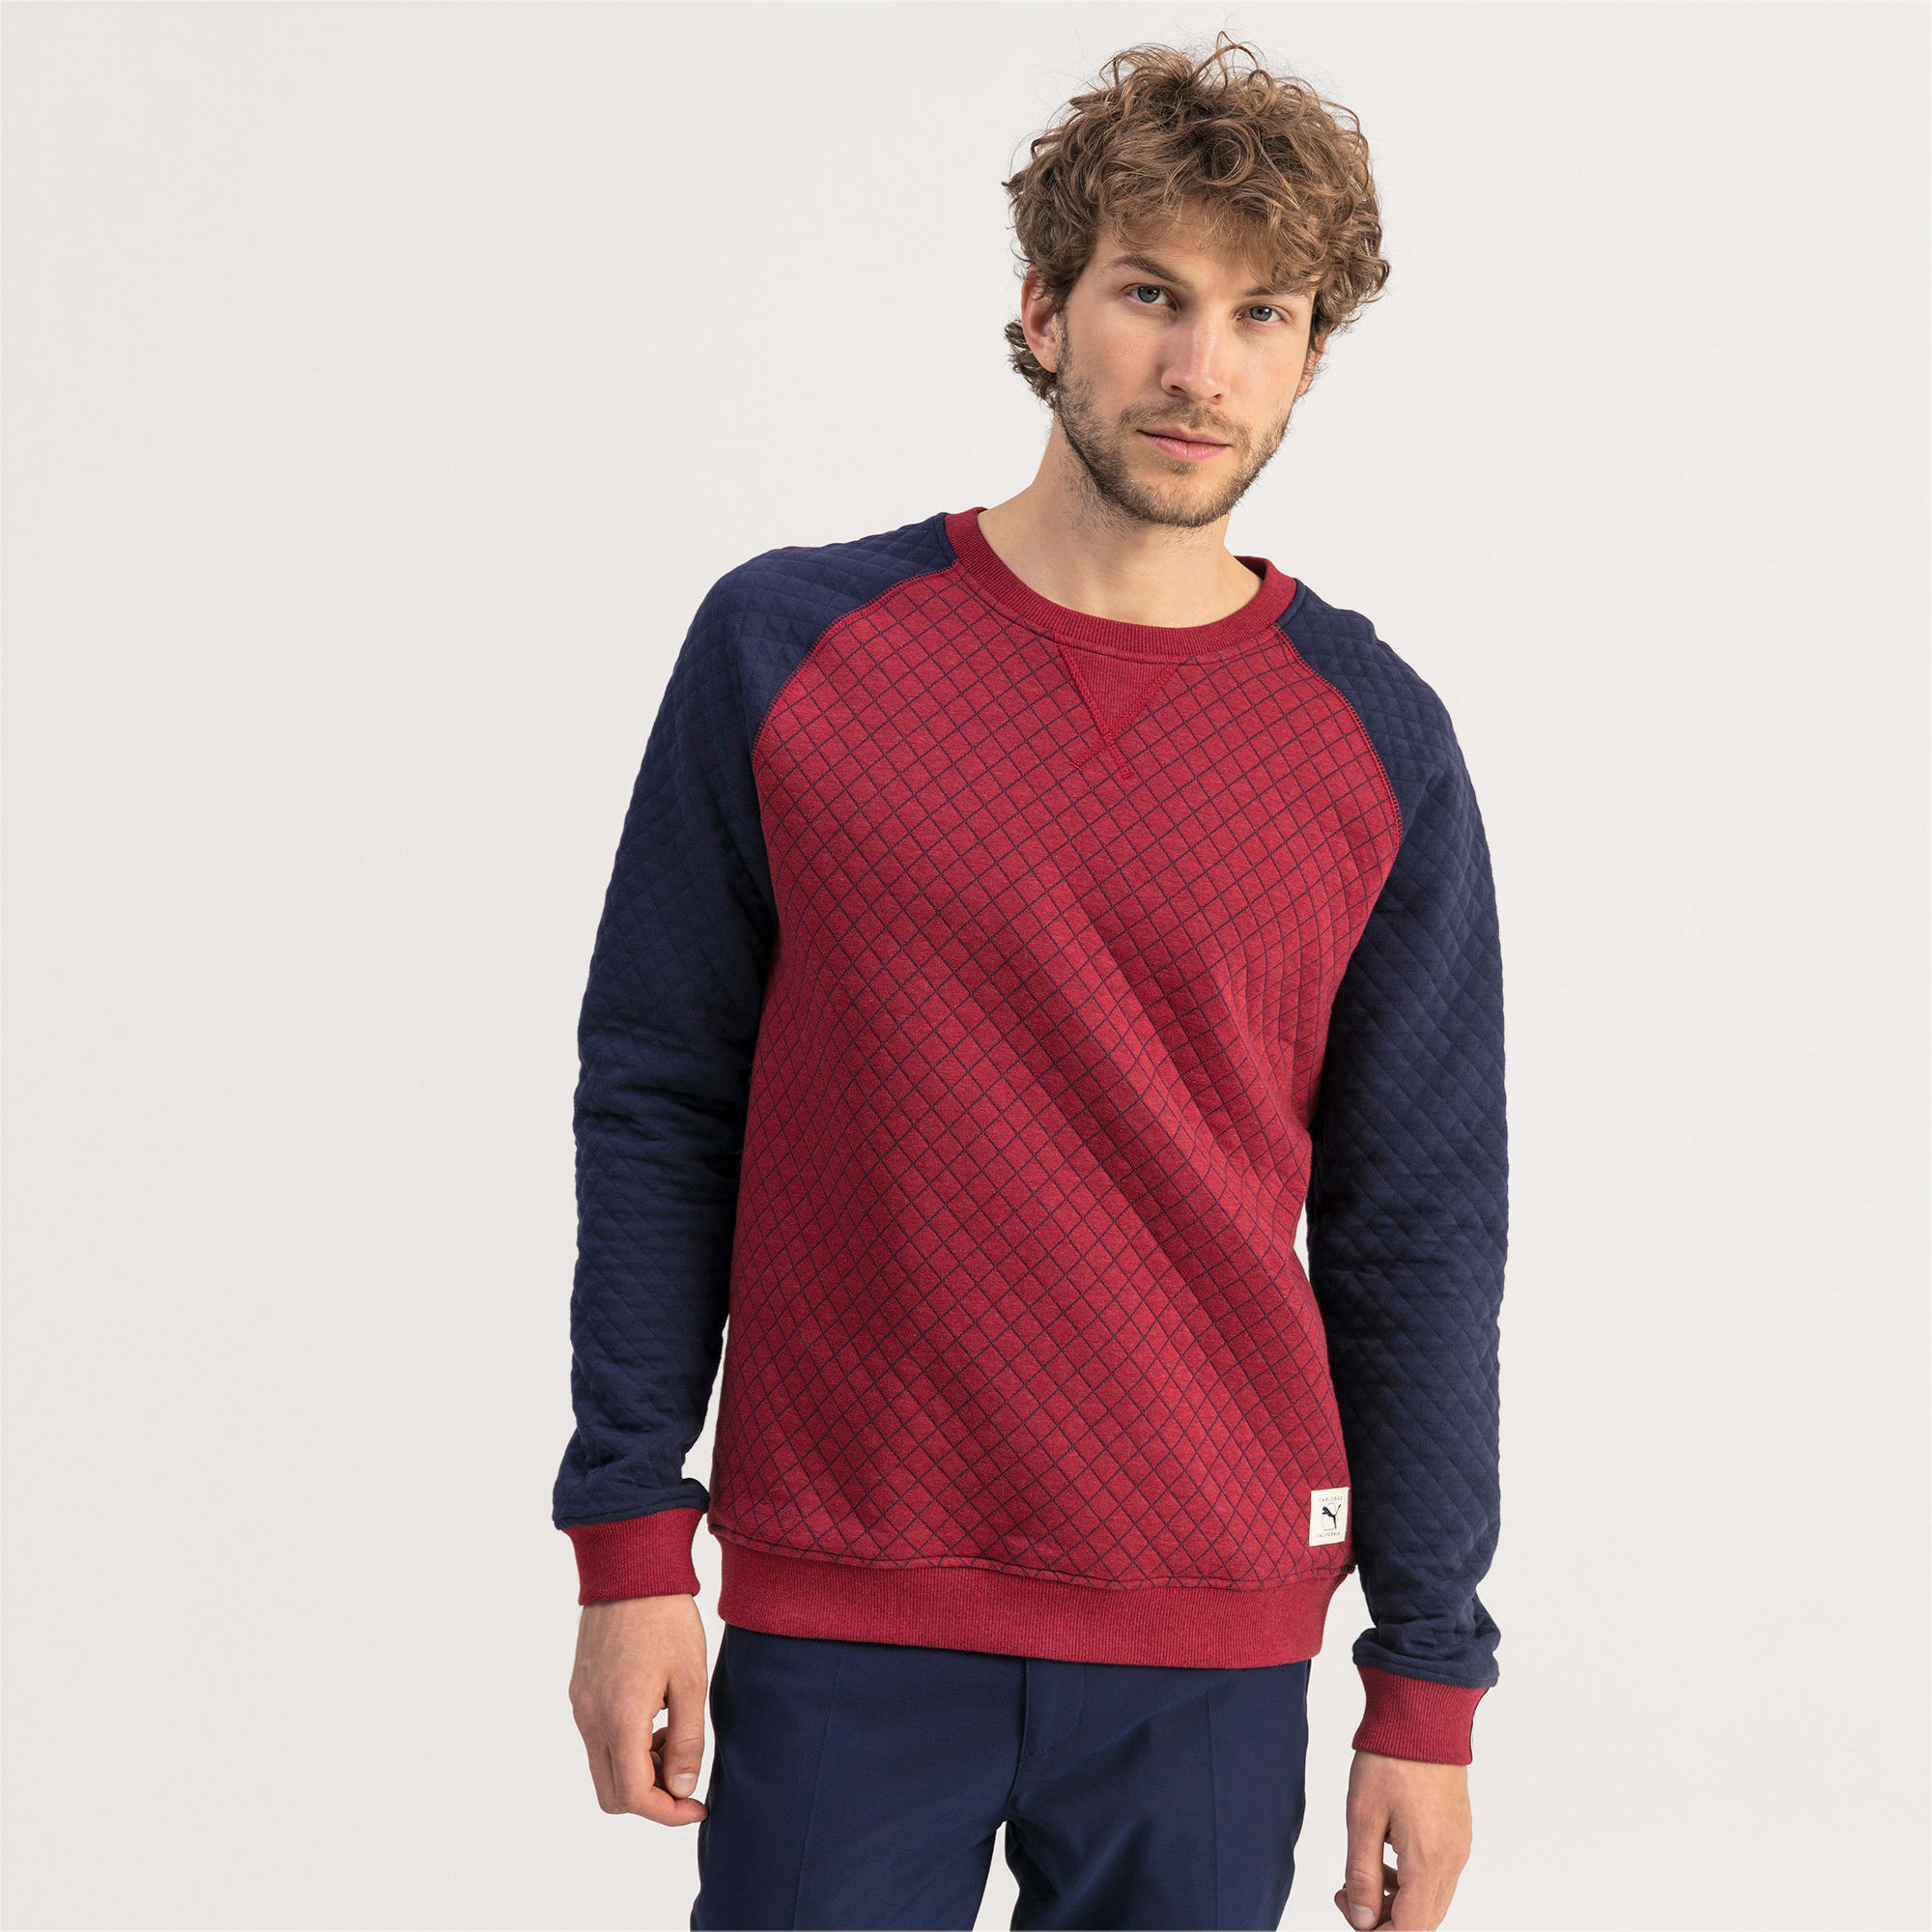 Thumbnail 1 of Gestepptes Herren Golf Sweatshirt, Rhubarb Heather, medium